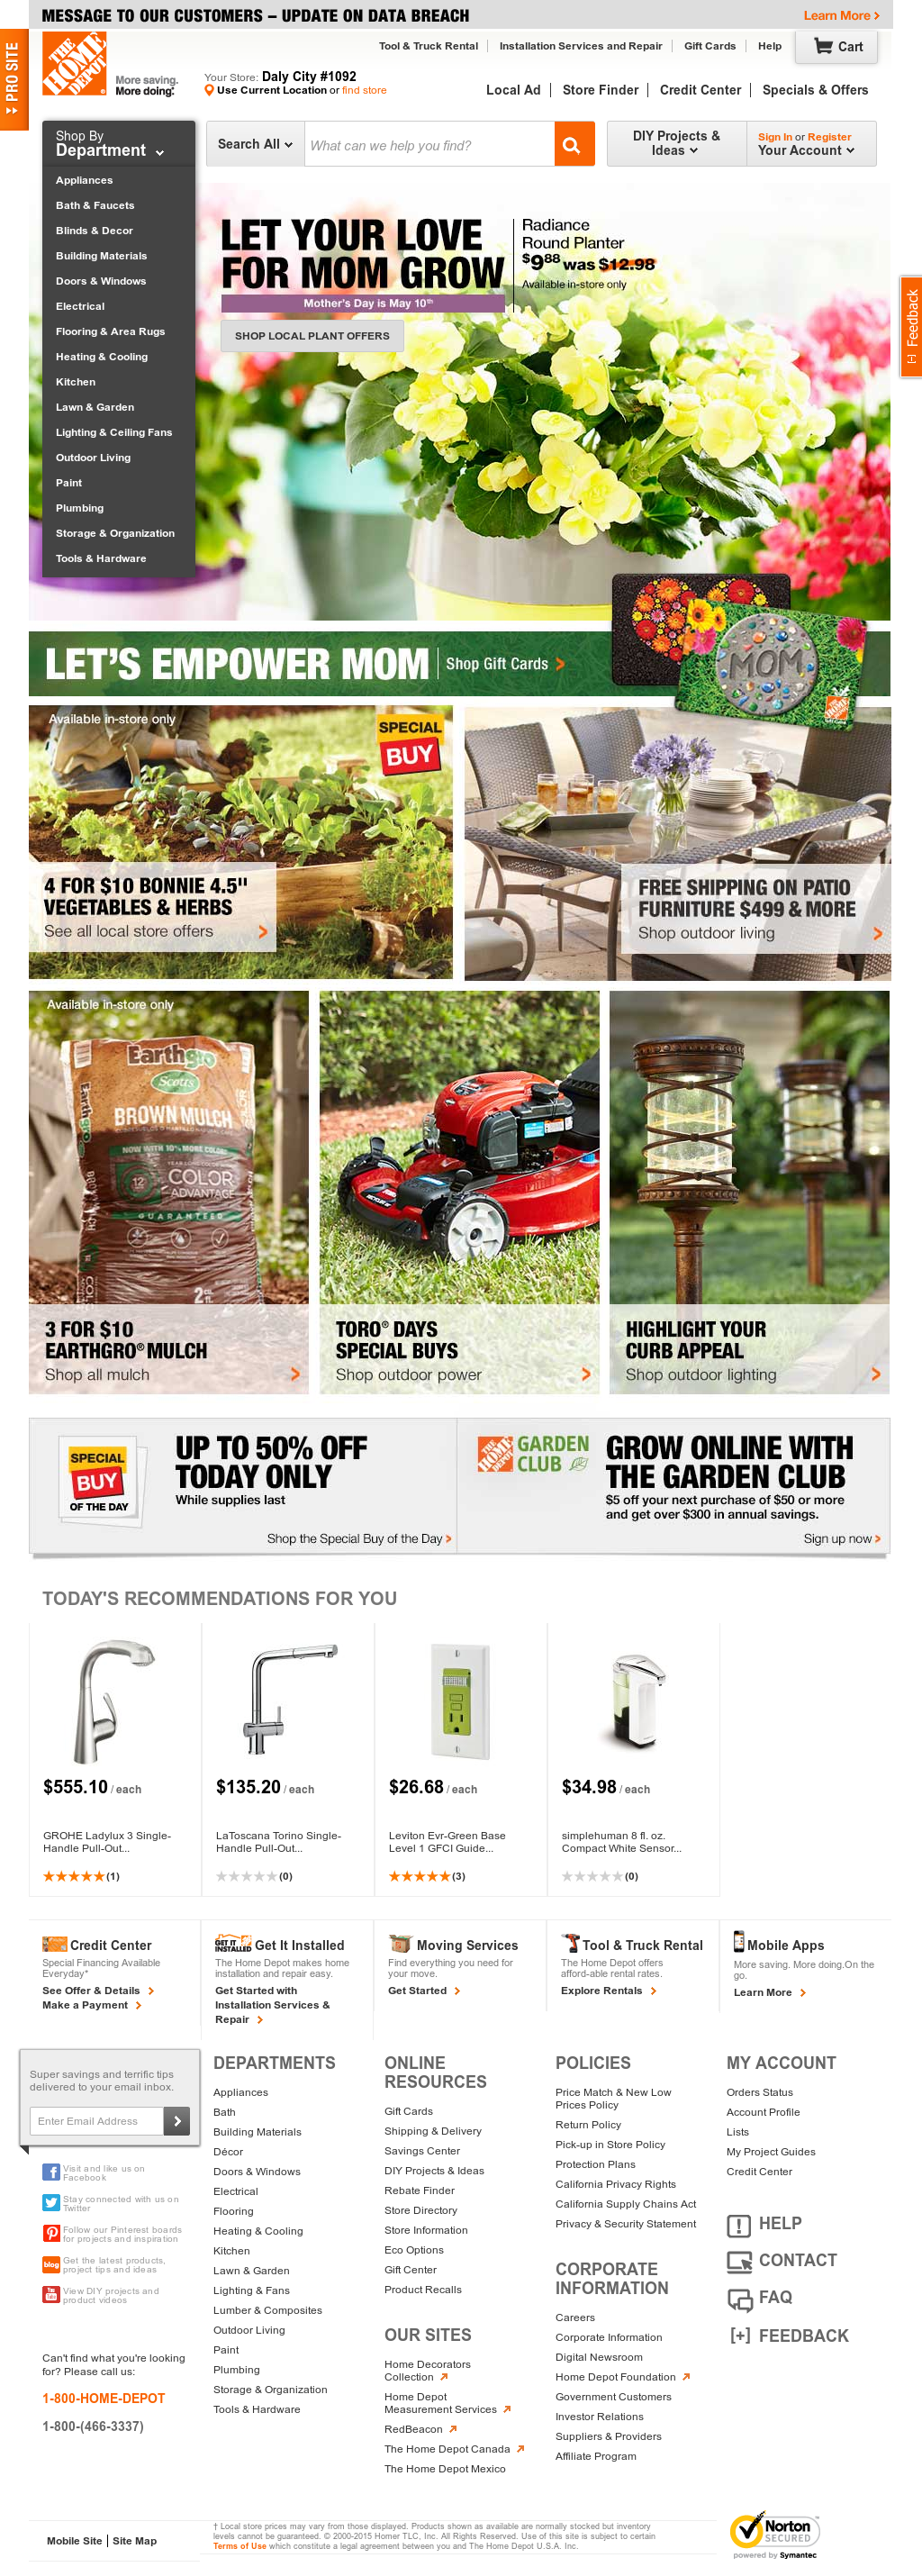 Home Depot Competitors, Revenue and Employees - Owler Company Profile